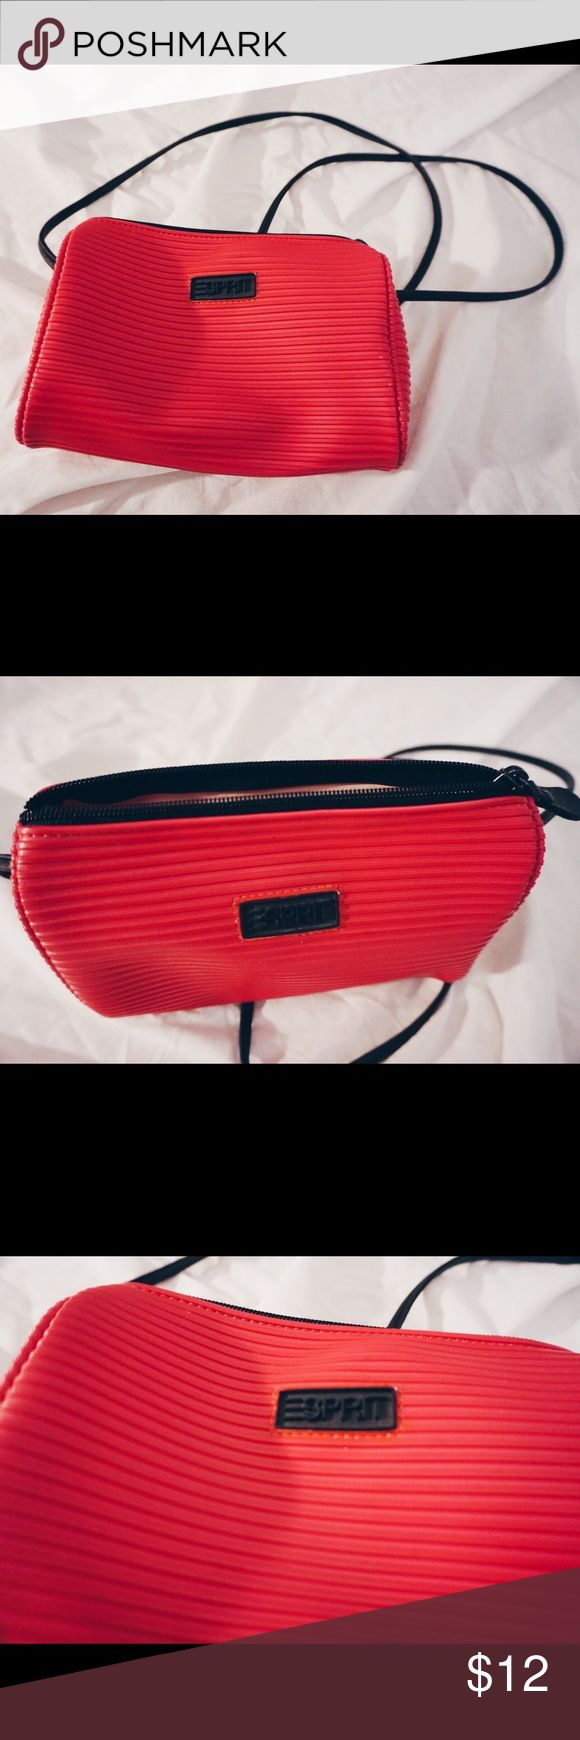 ESPIRIT HOT PINK CROSSBODY BAG ESPIRIT HOT PINK CROSSBODY BAG  Small CROSSBODY bag made with a rubber material, easy to clean. Perfect small bag for summer days and an athleisure look like Gigi Hadid does.  GREAT CONDITION WORN TWICE - not UO for promo Urban Outfitters Bags Crossbody Bags